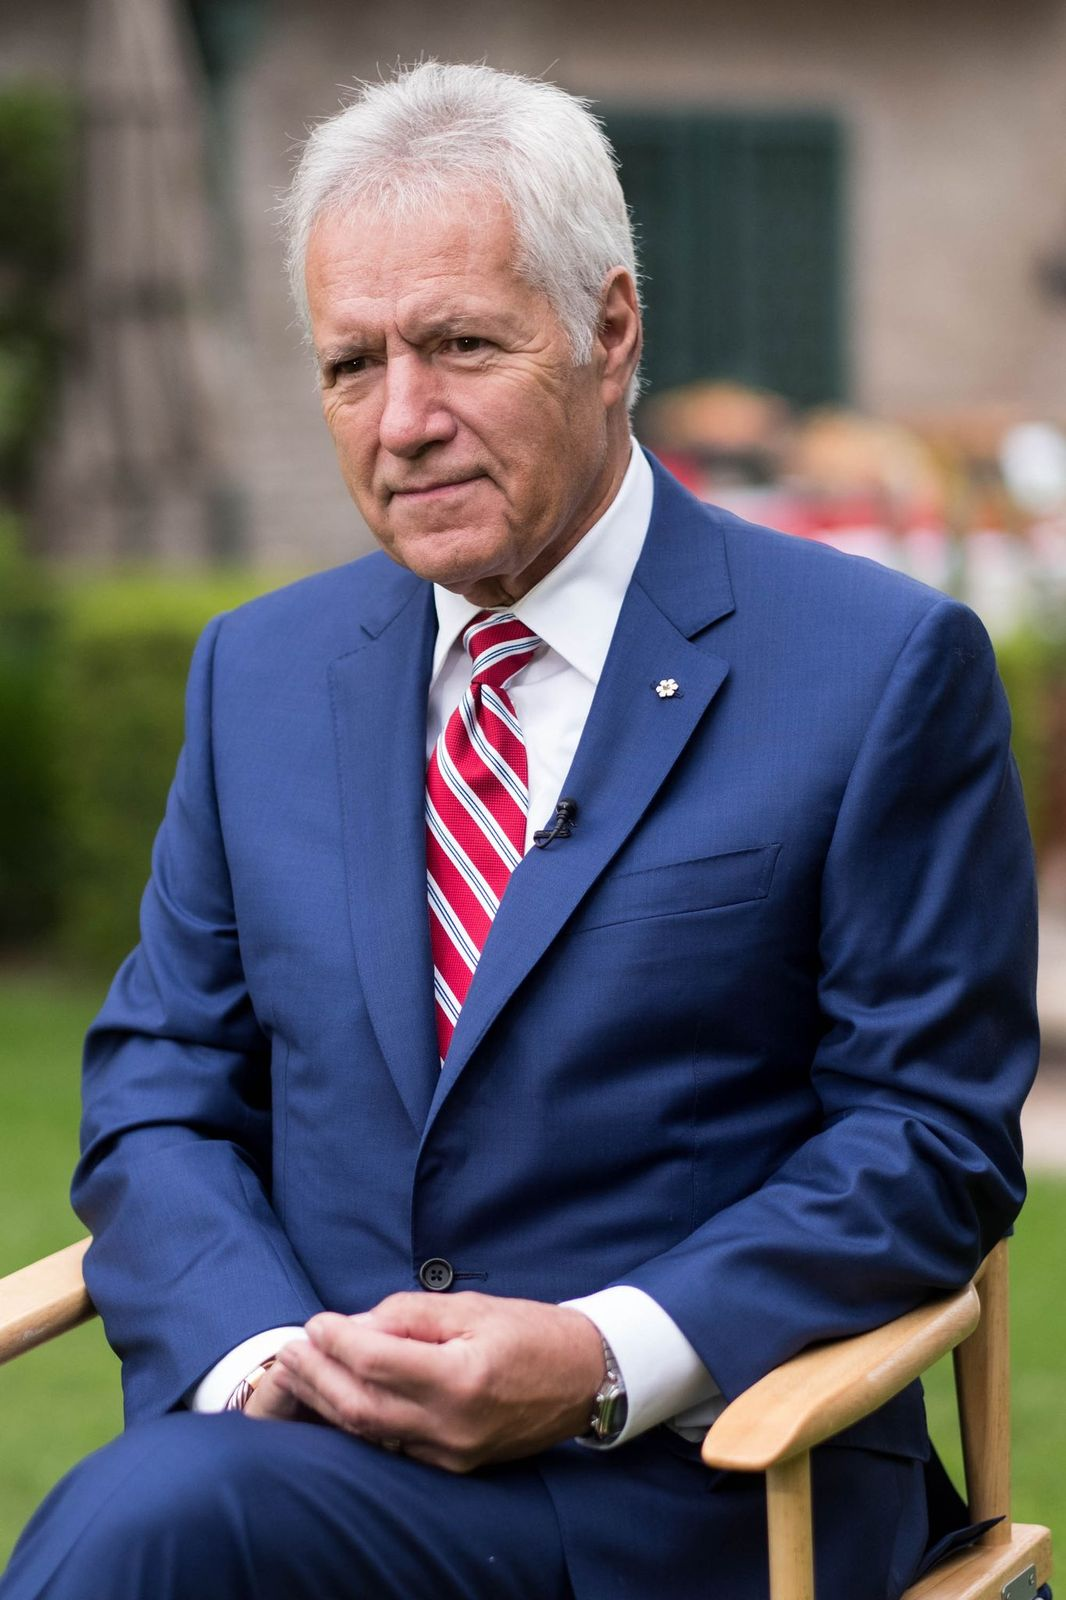 TV personality Alex Trebek at the 150th anniversary of Canada's Confederation at the Official Residence of Canada on June 30, 2017 in Los Angeles, California. | Photo: Getty Images